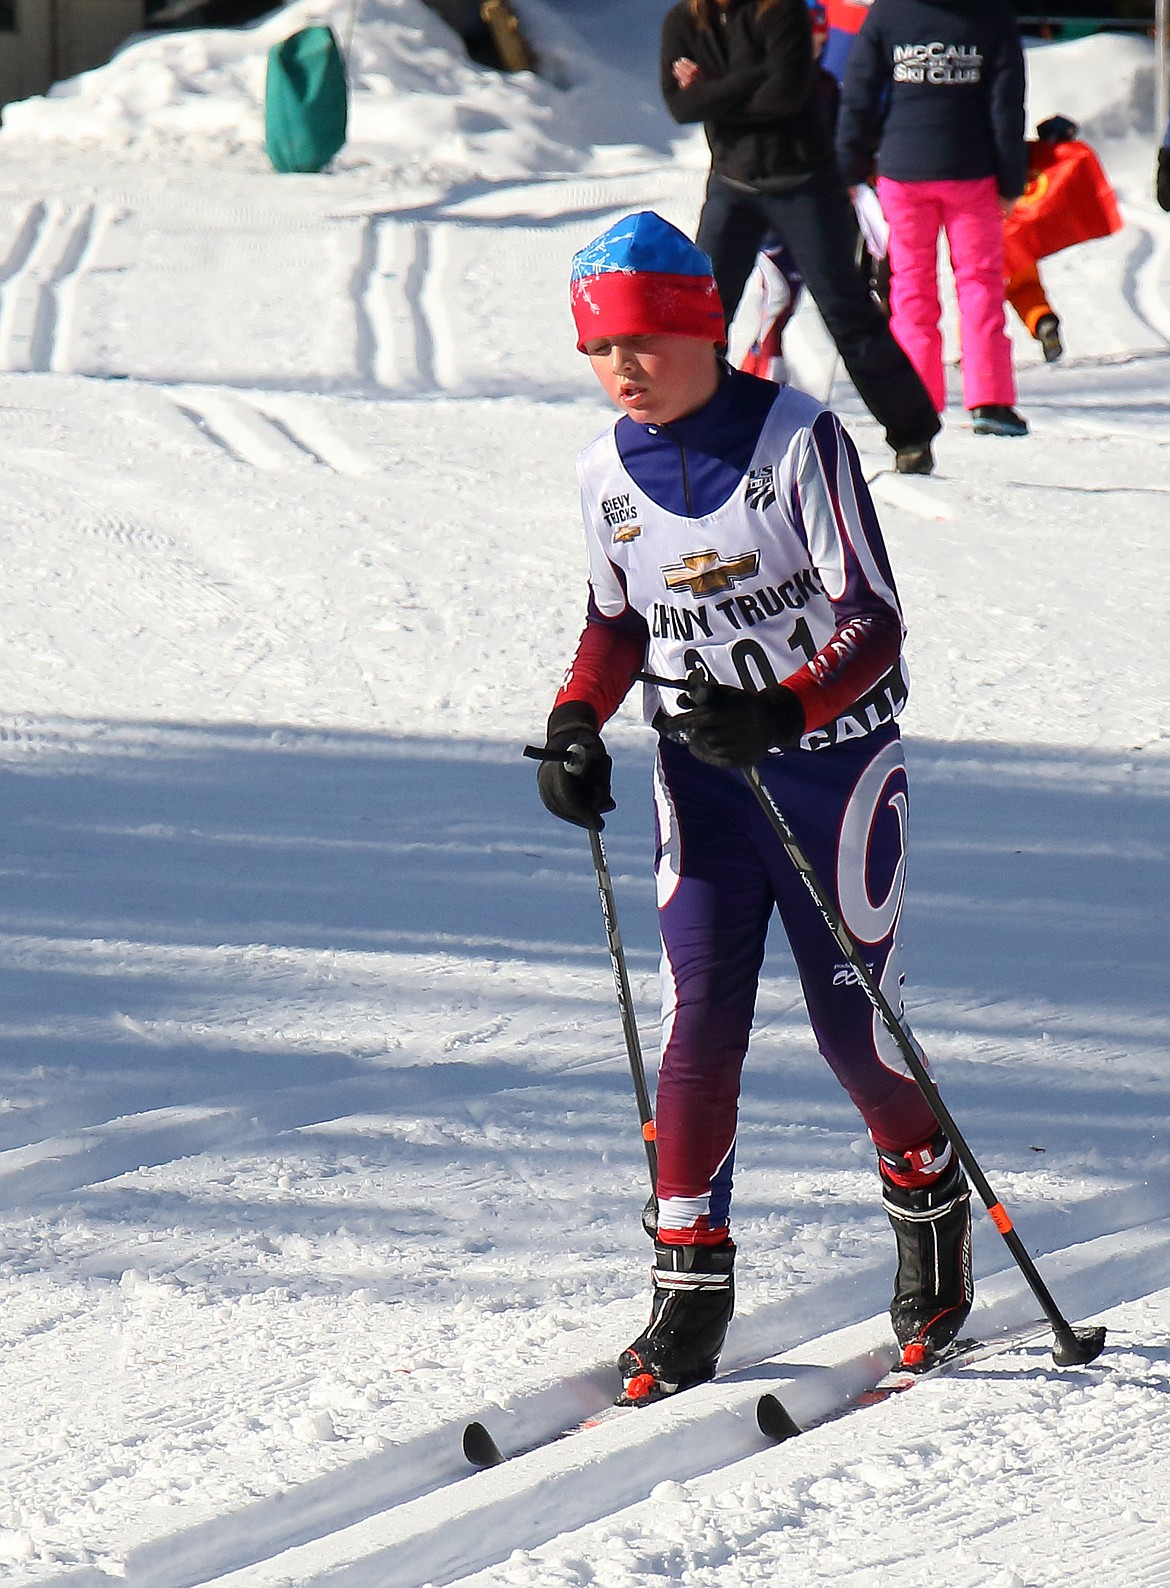 Glacier Nordic athlete Henry Tate races in McCall, Idaho. (Photo courtesy Wayne Petsch)